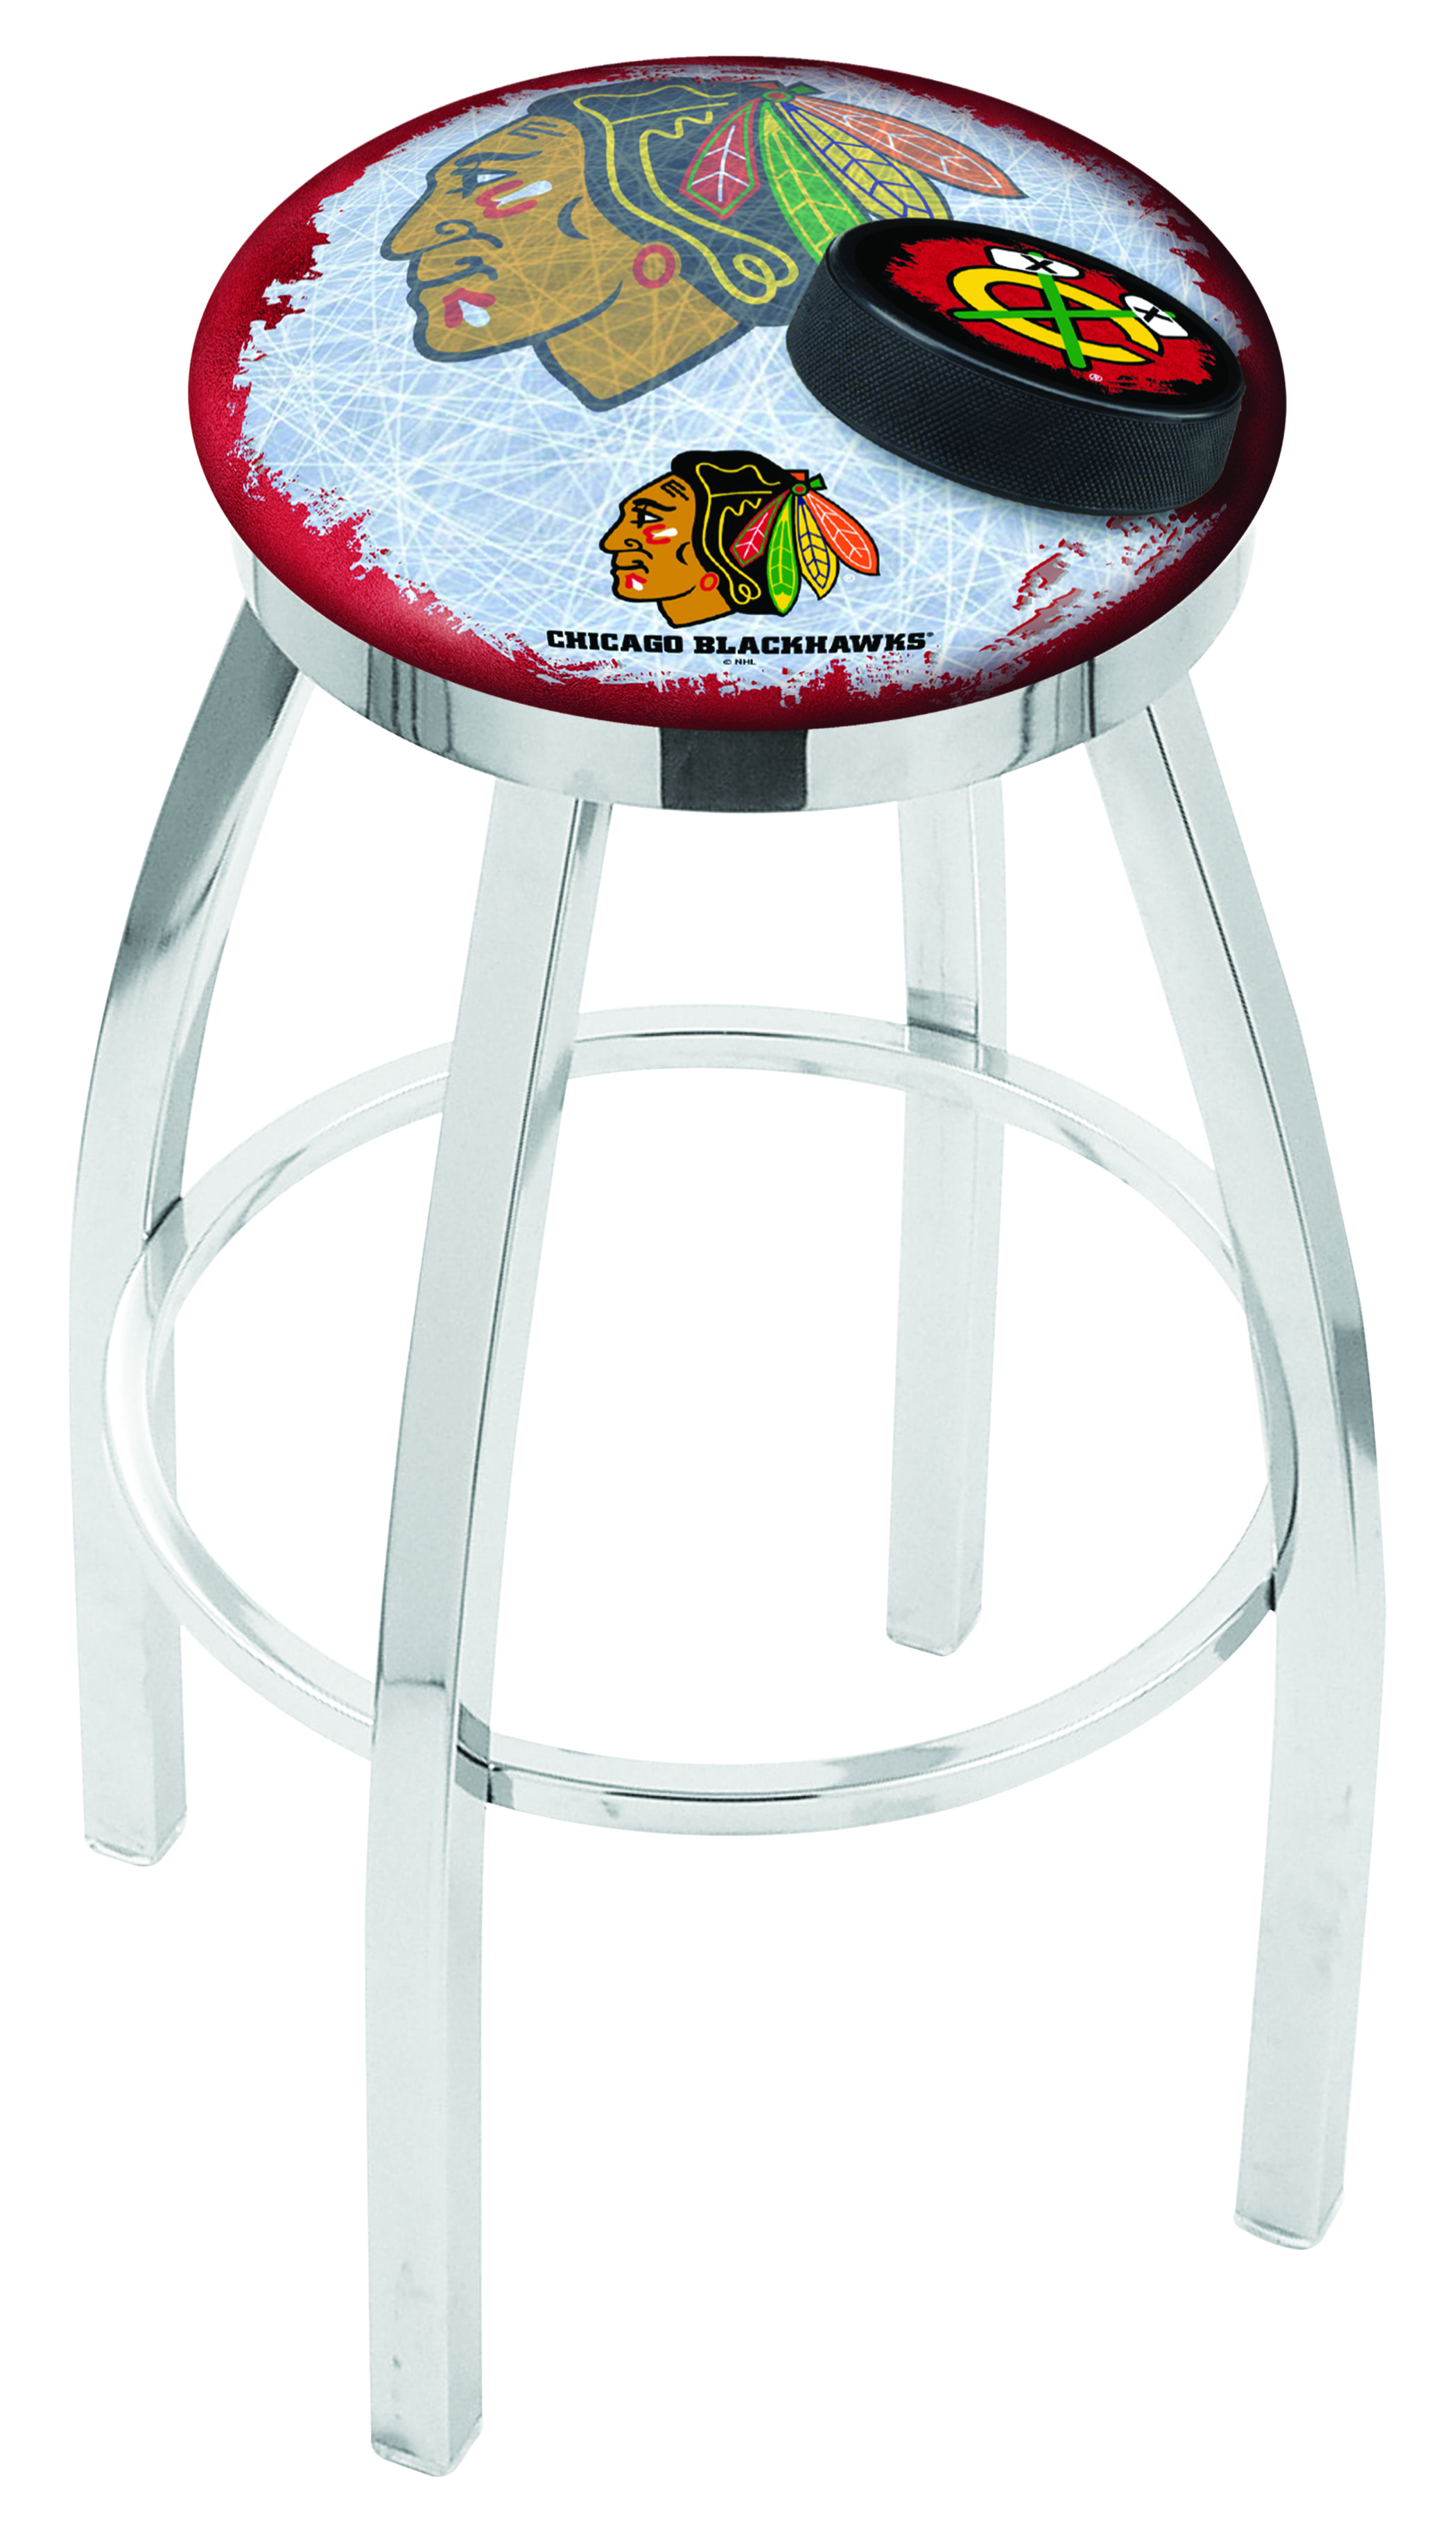 Chicago Blackhawks Spectator Chair W Red Background L8c2c